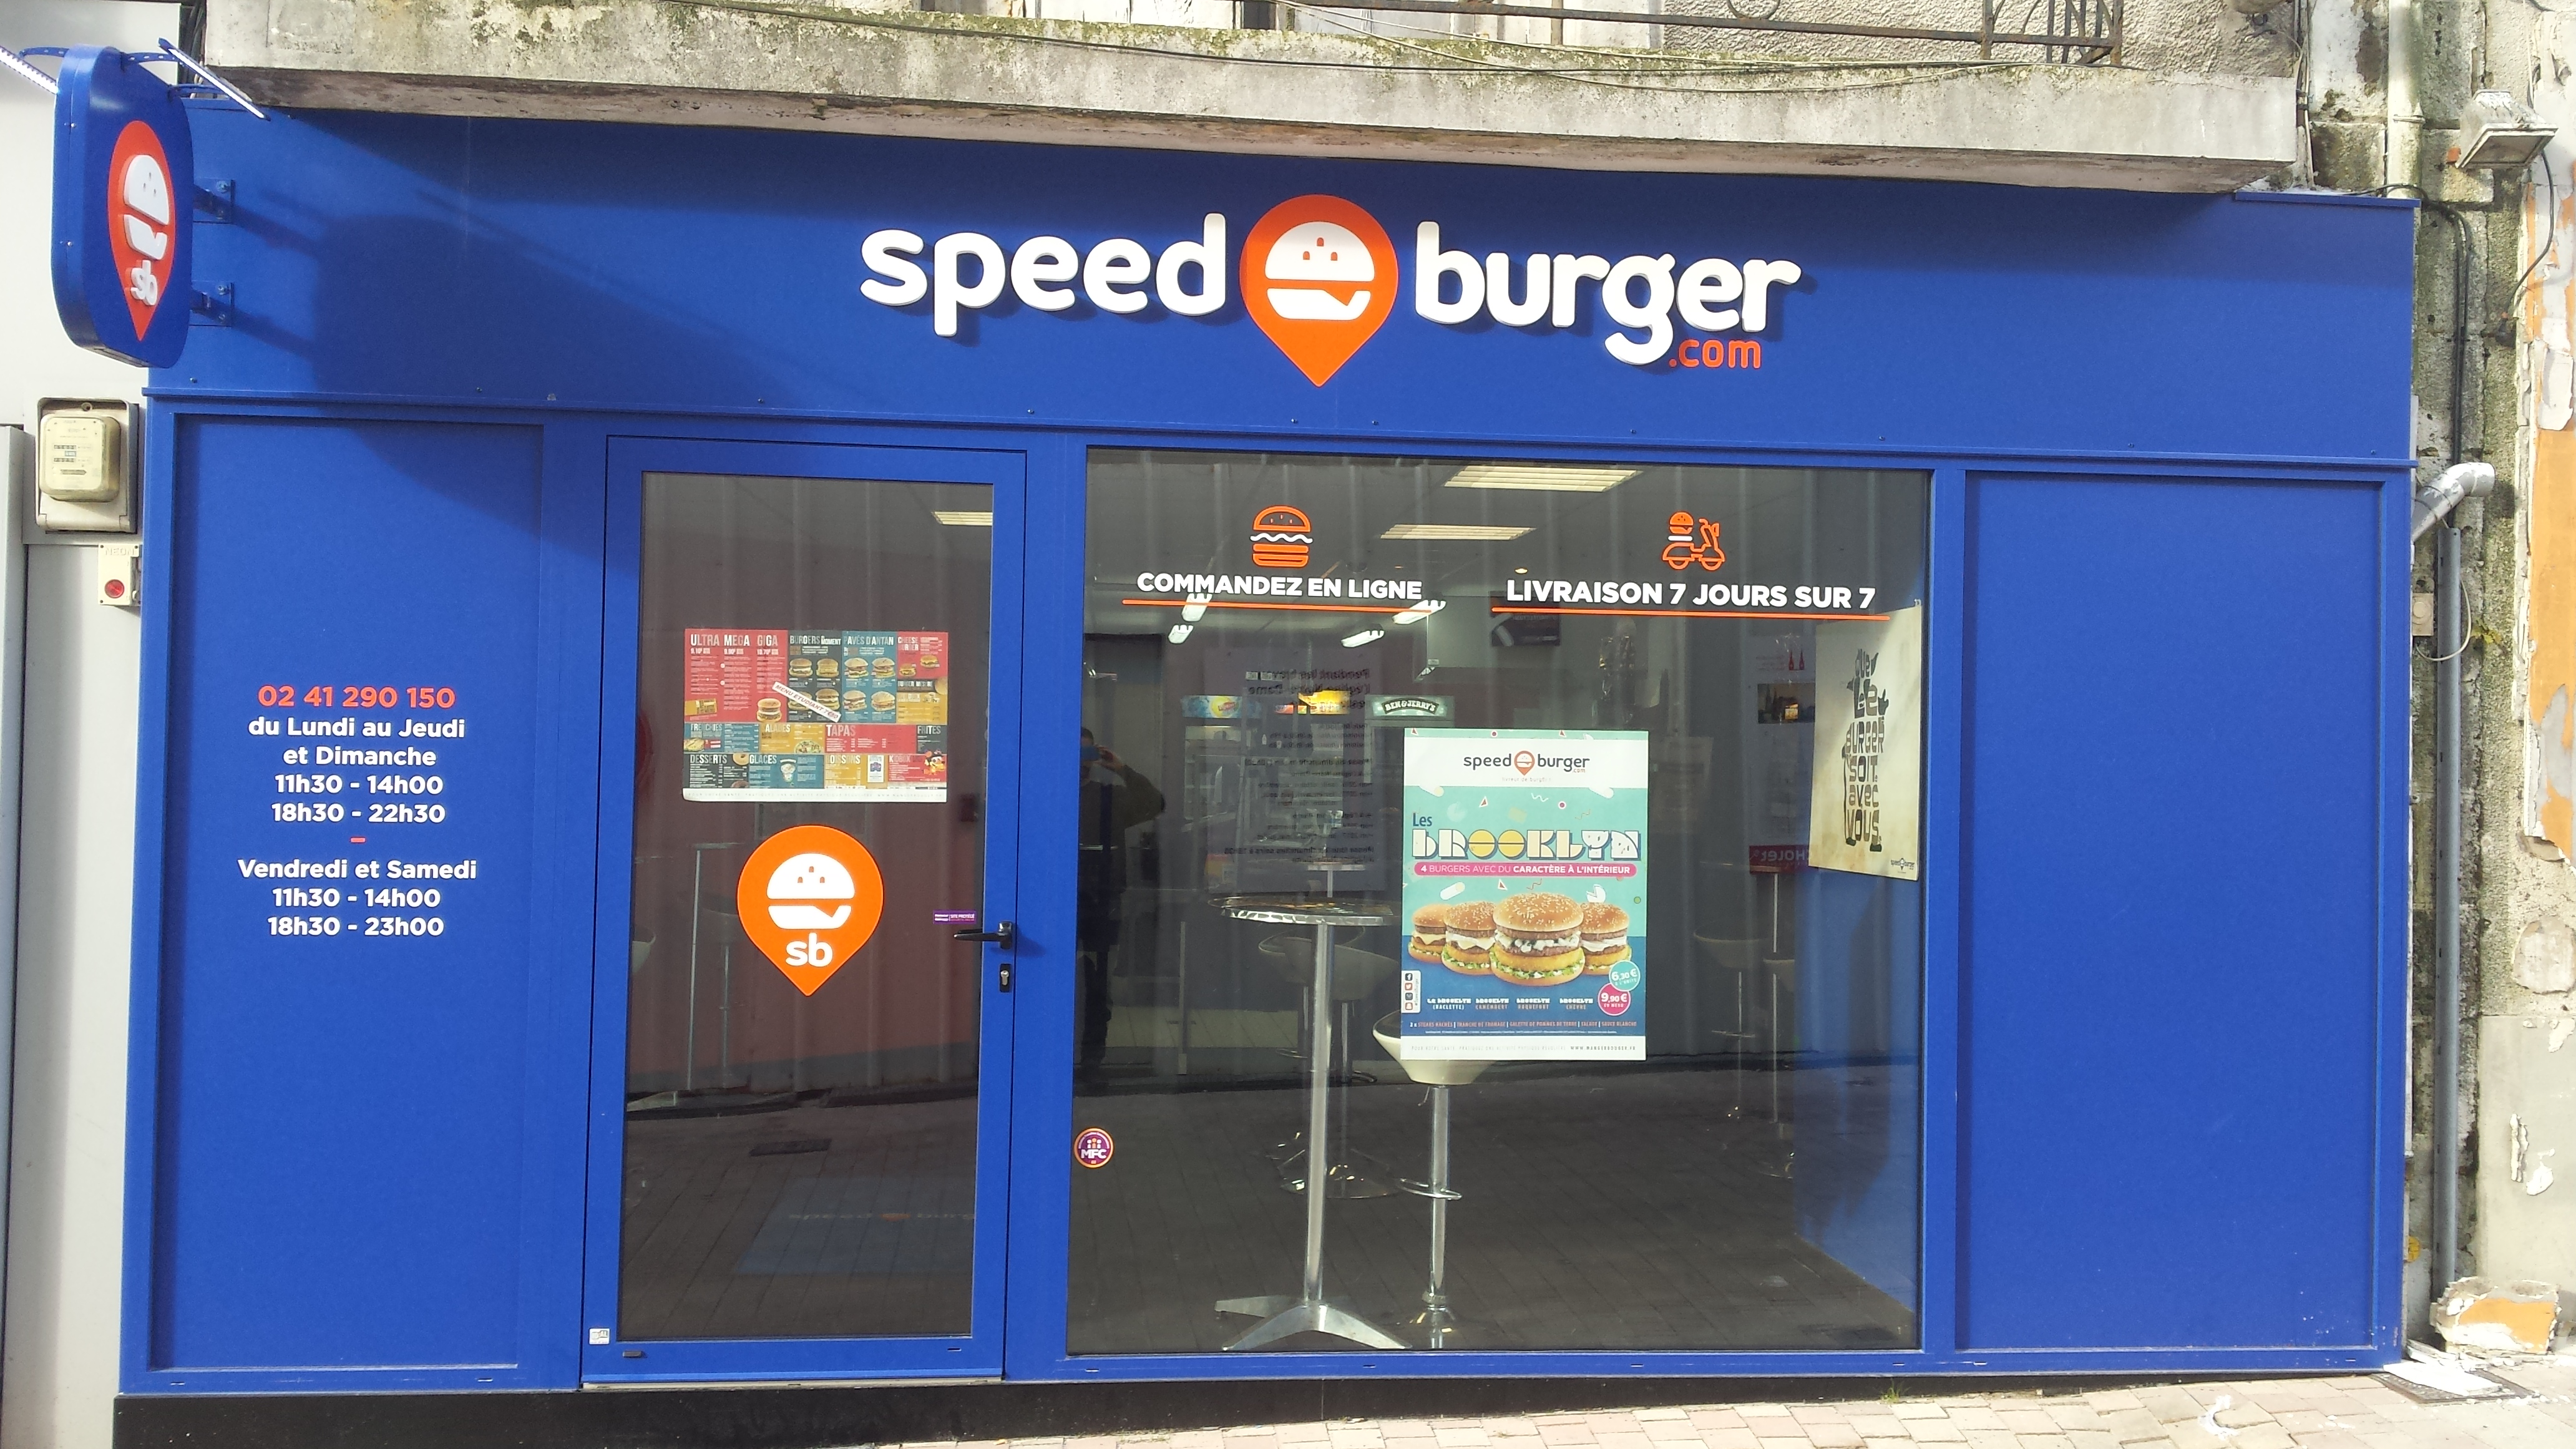 Speed burger cholet cholet 49300 rue jean paul ii for Piscine cholet horaires